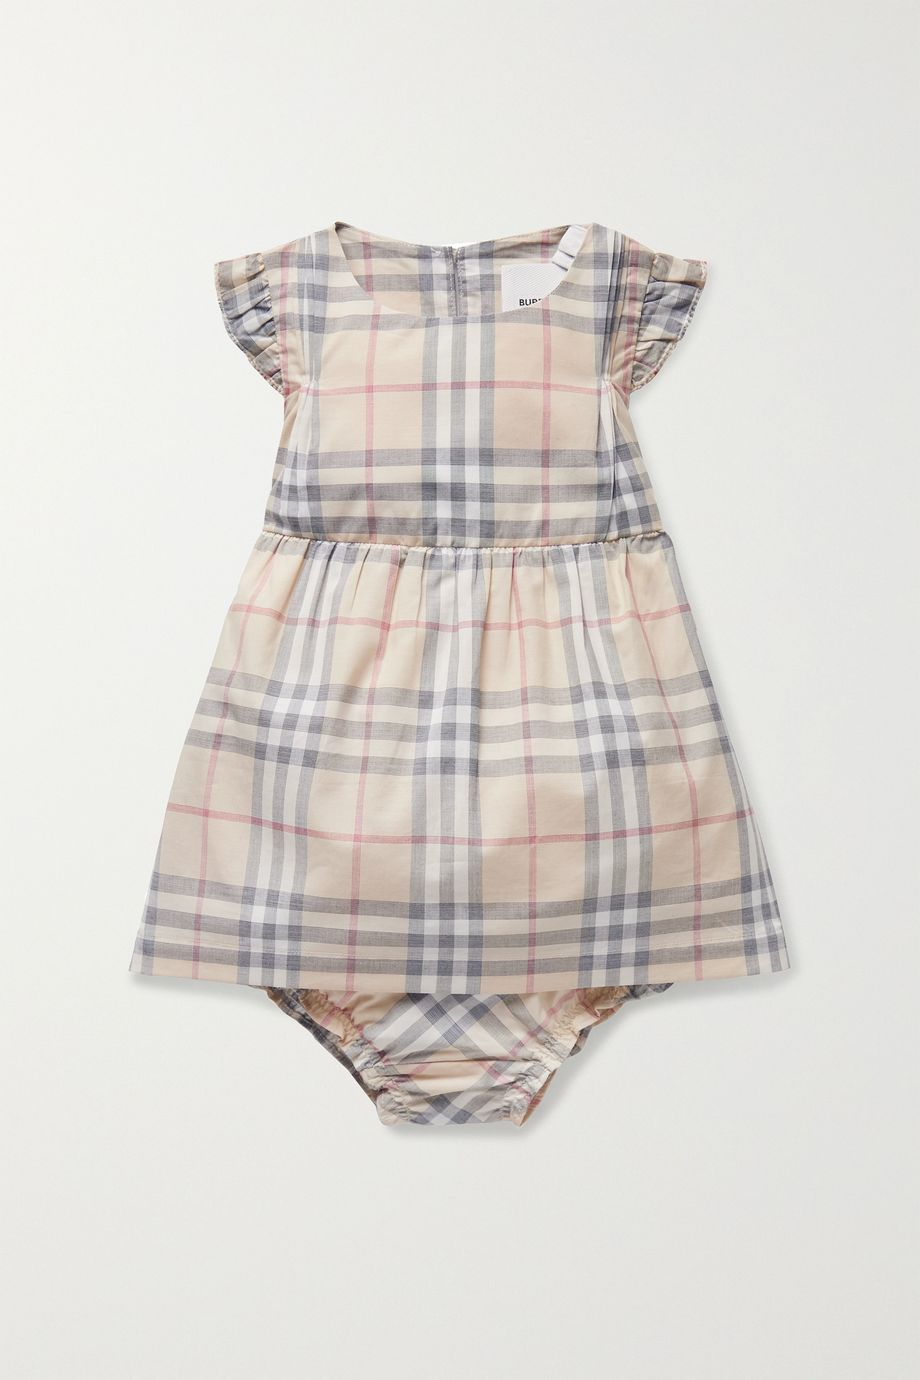 Burberry Kids Newborn ruffled checked cotton-poplin dress and bloomers set